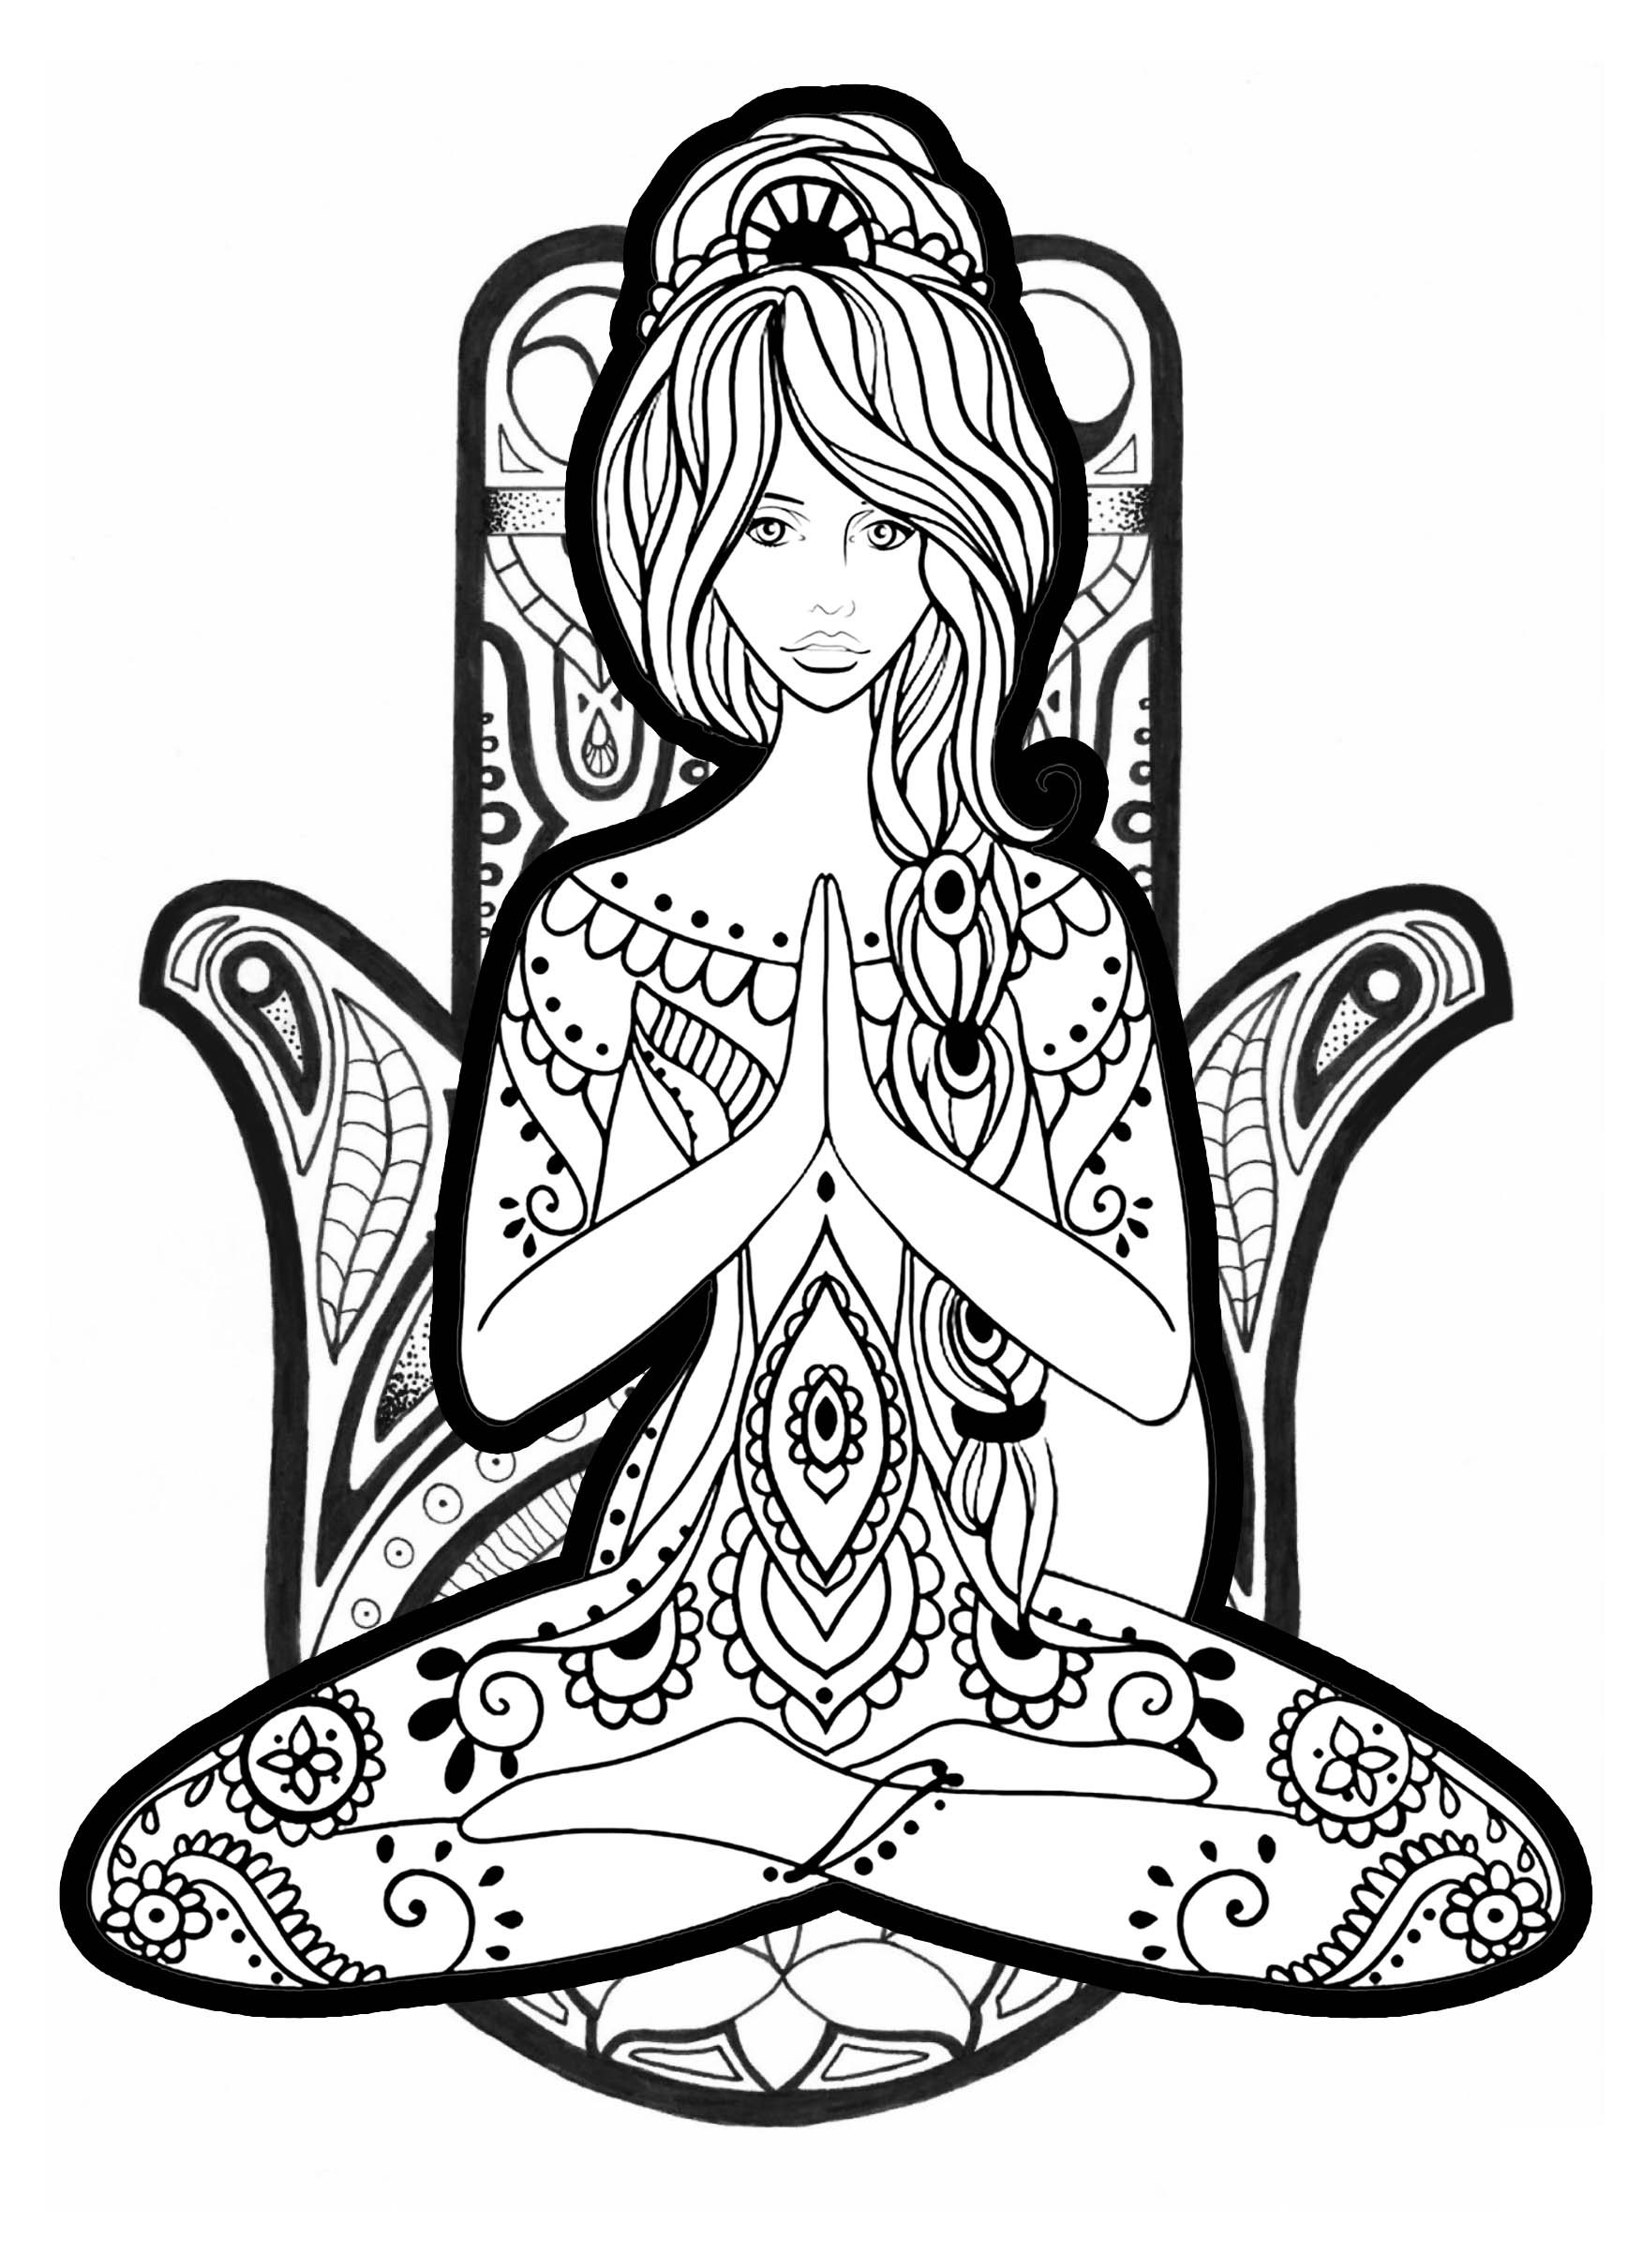 Yoga 2 Zen And Anti Stress Coloring Pages For Adults Justcolor